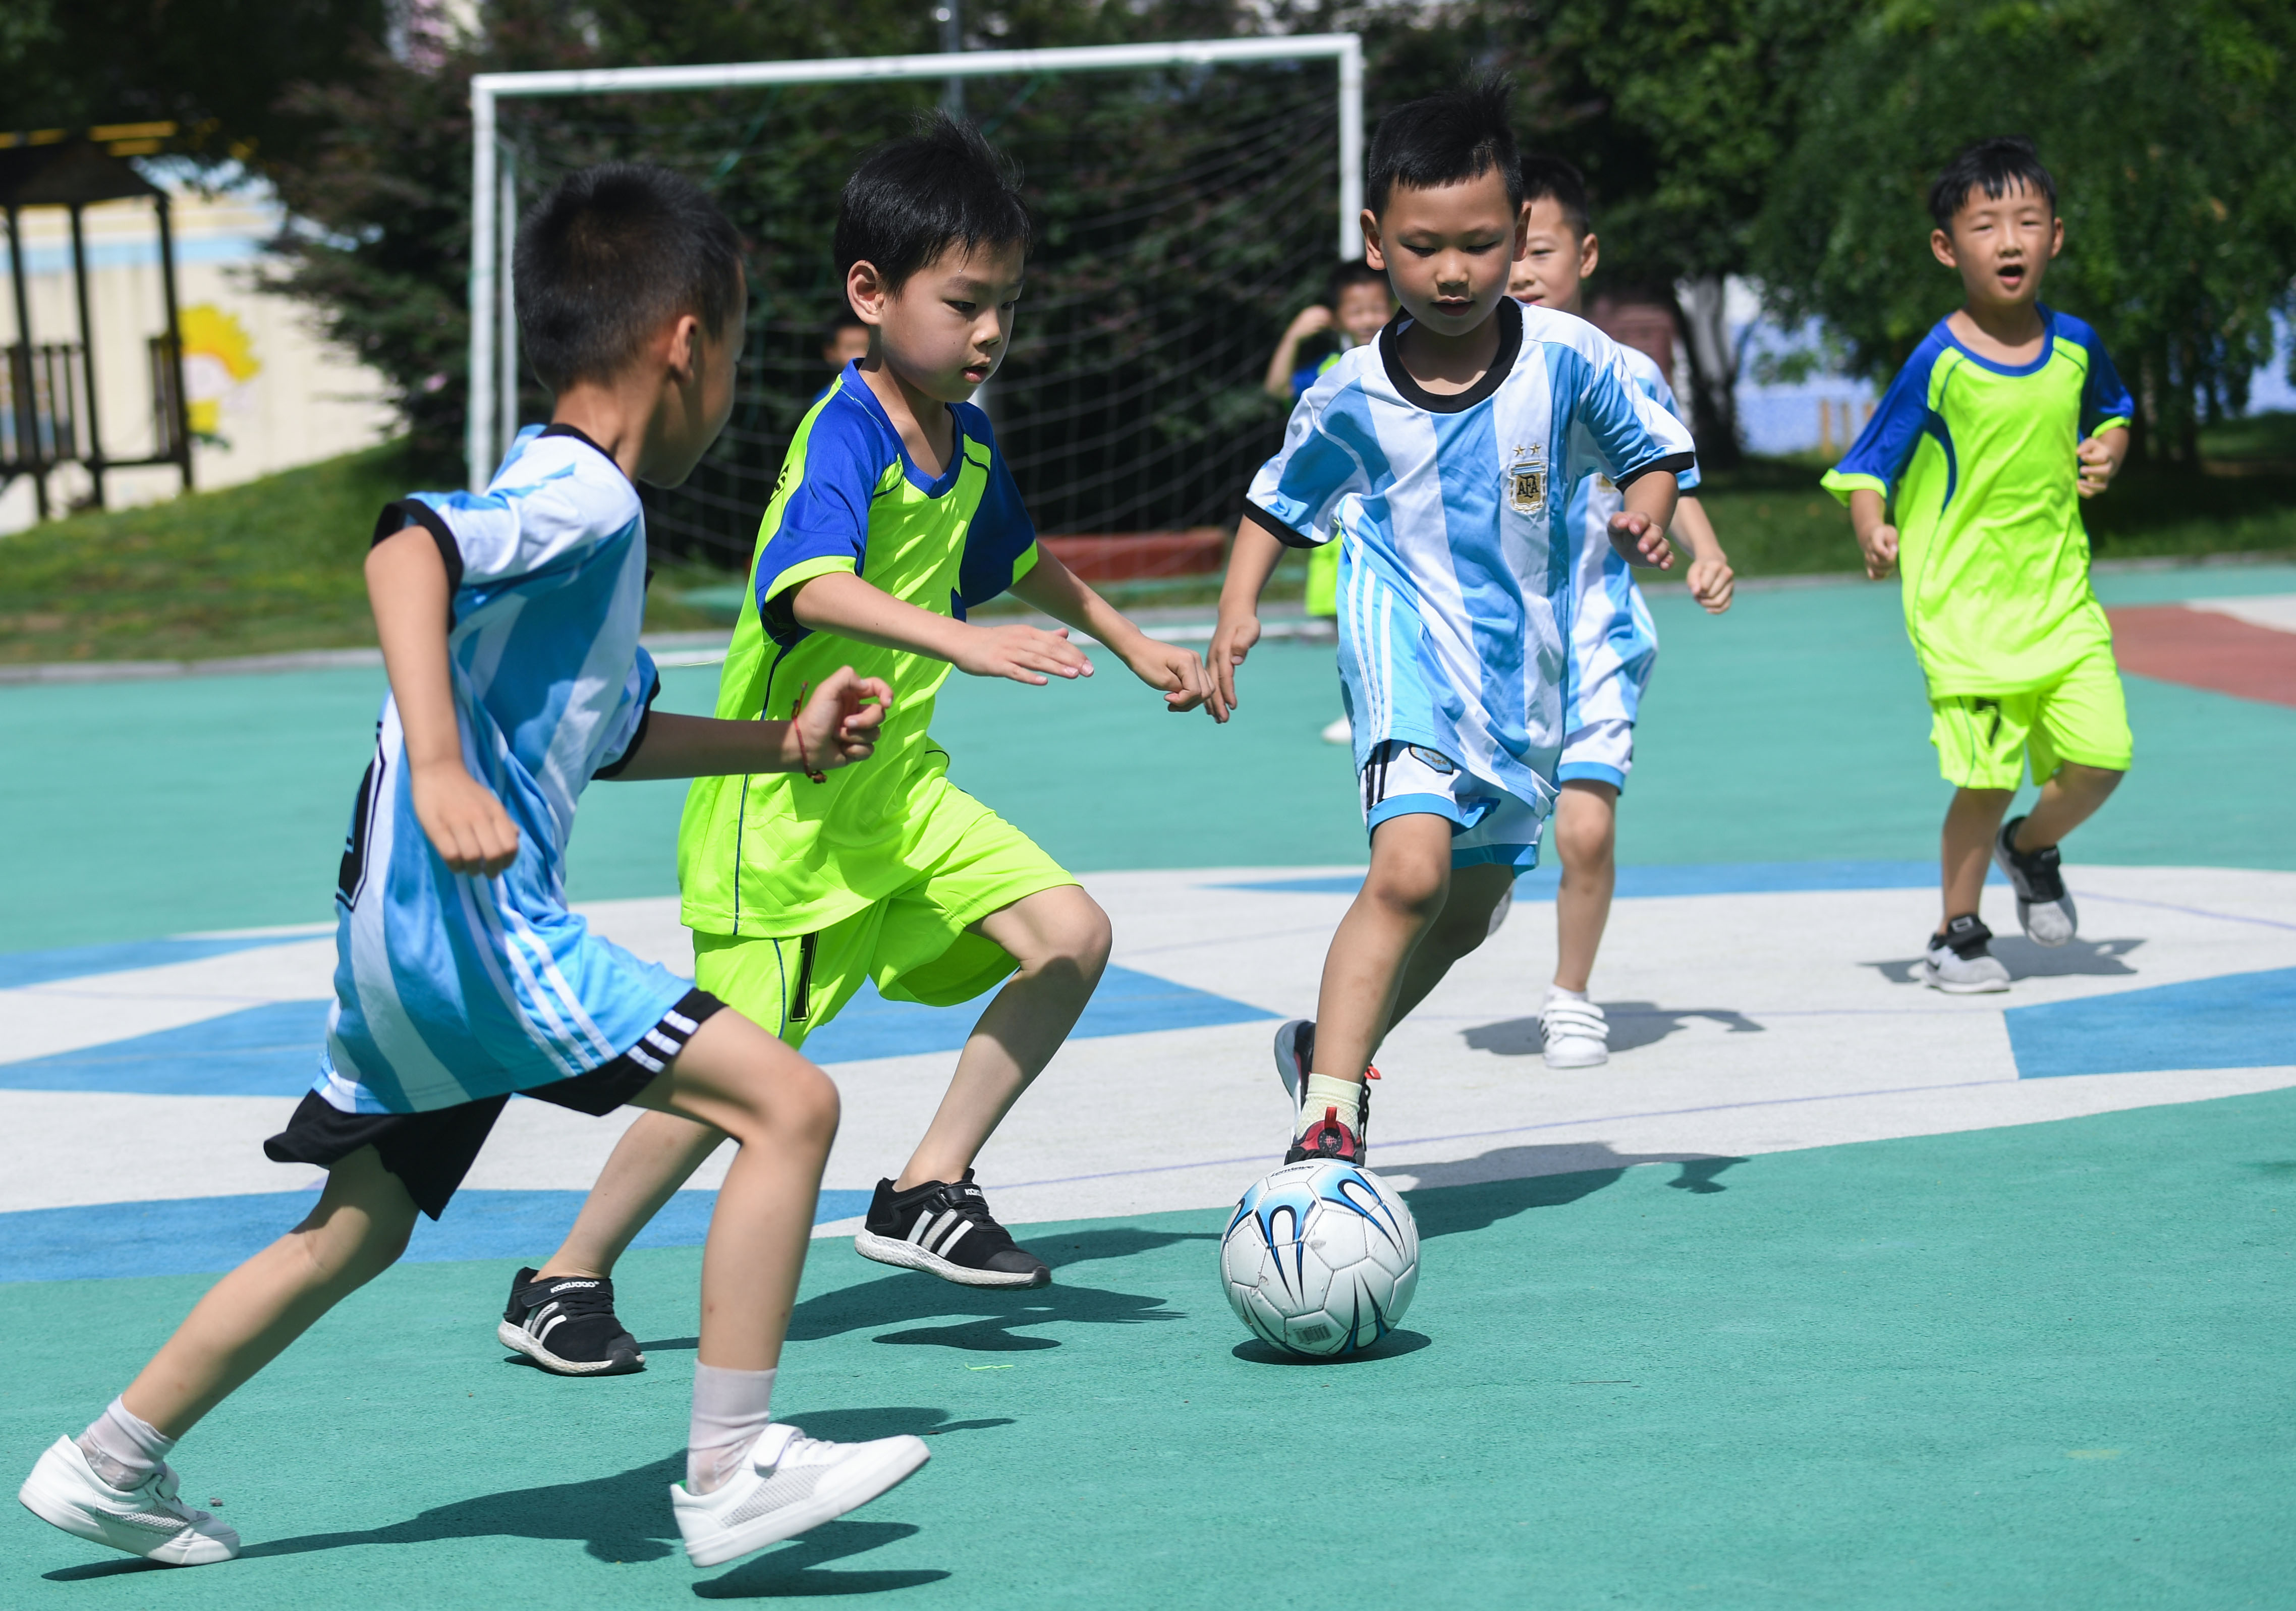 China has 27,000 schools featuring football education